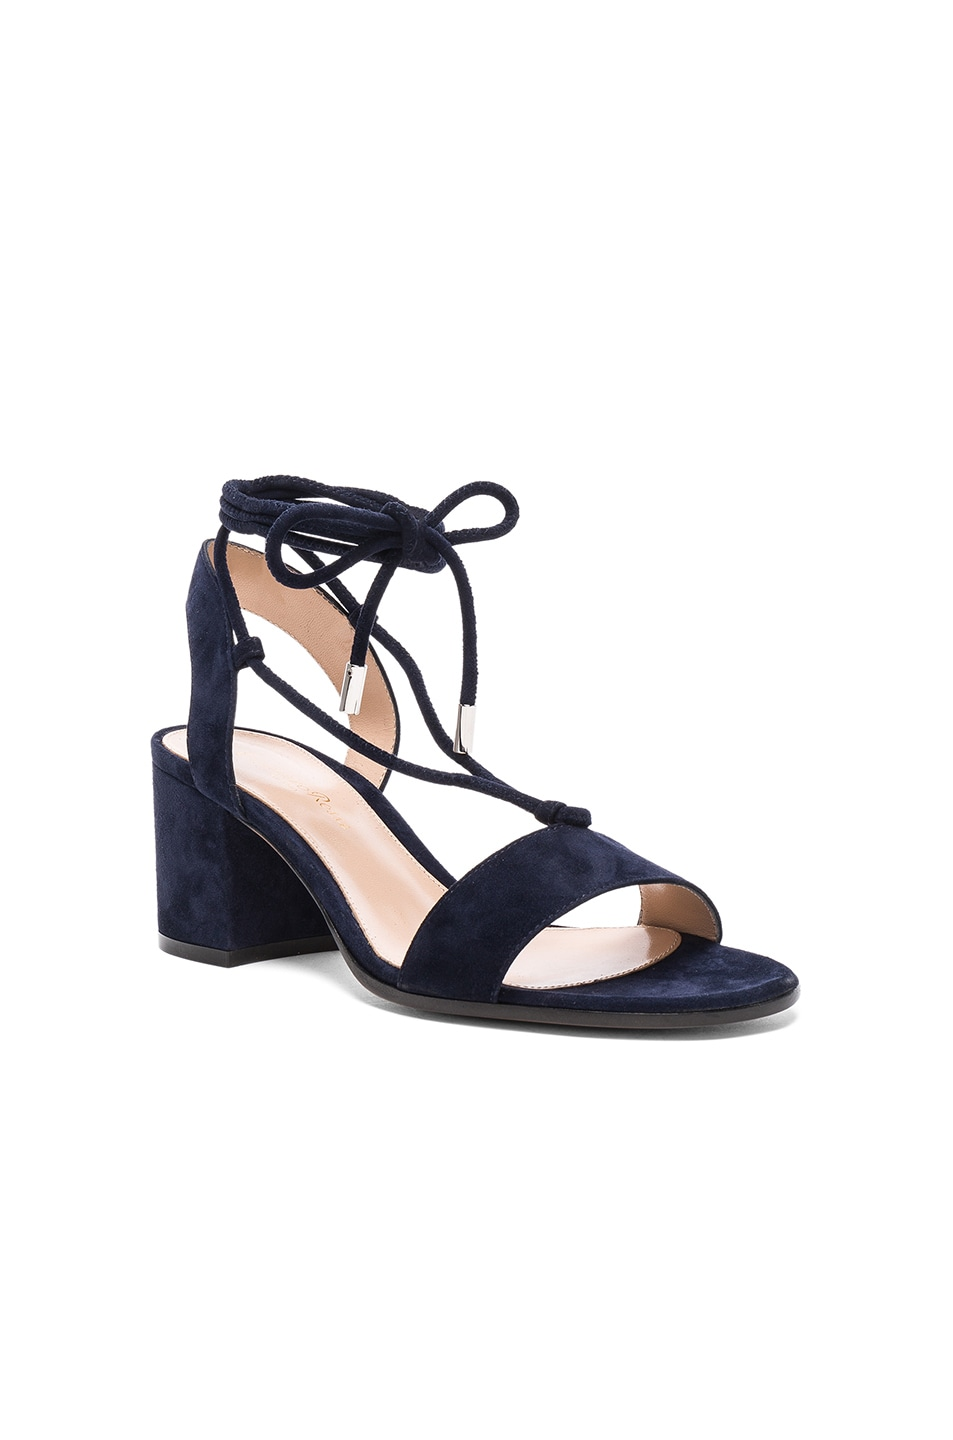 Image 2 of Gianvito Rossi Suede Lace Up Leather Sandals in Denim